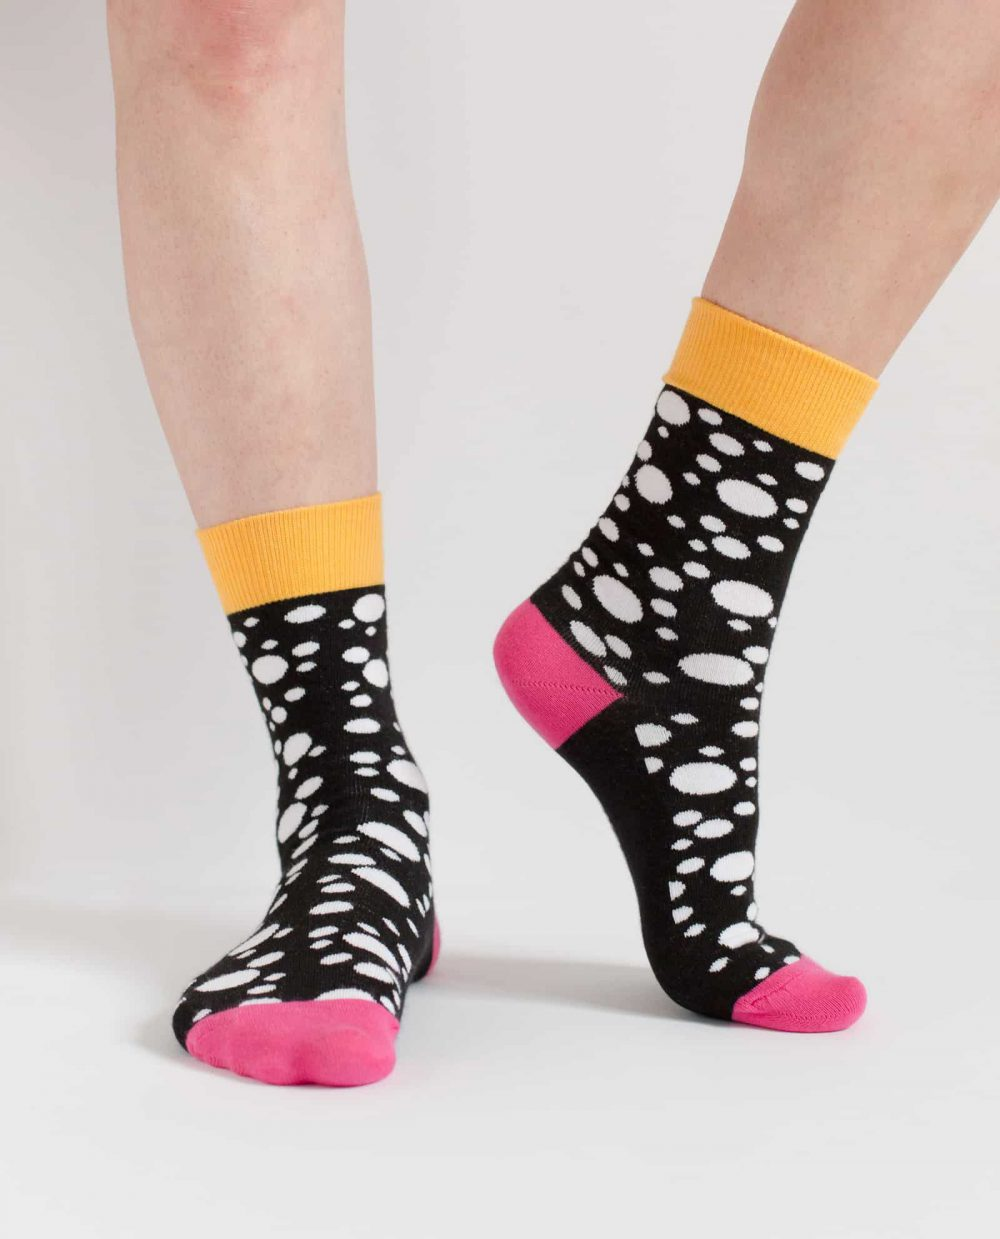 polka dot socks for women